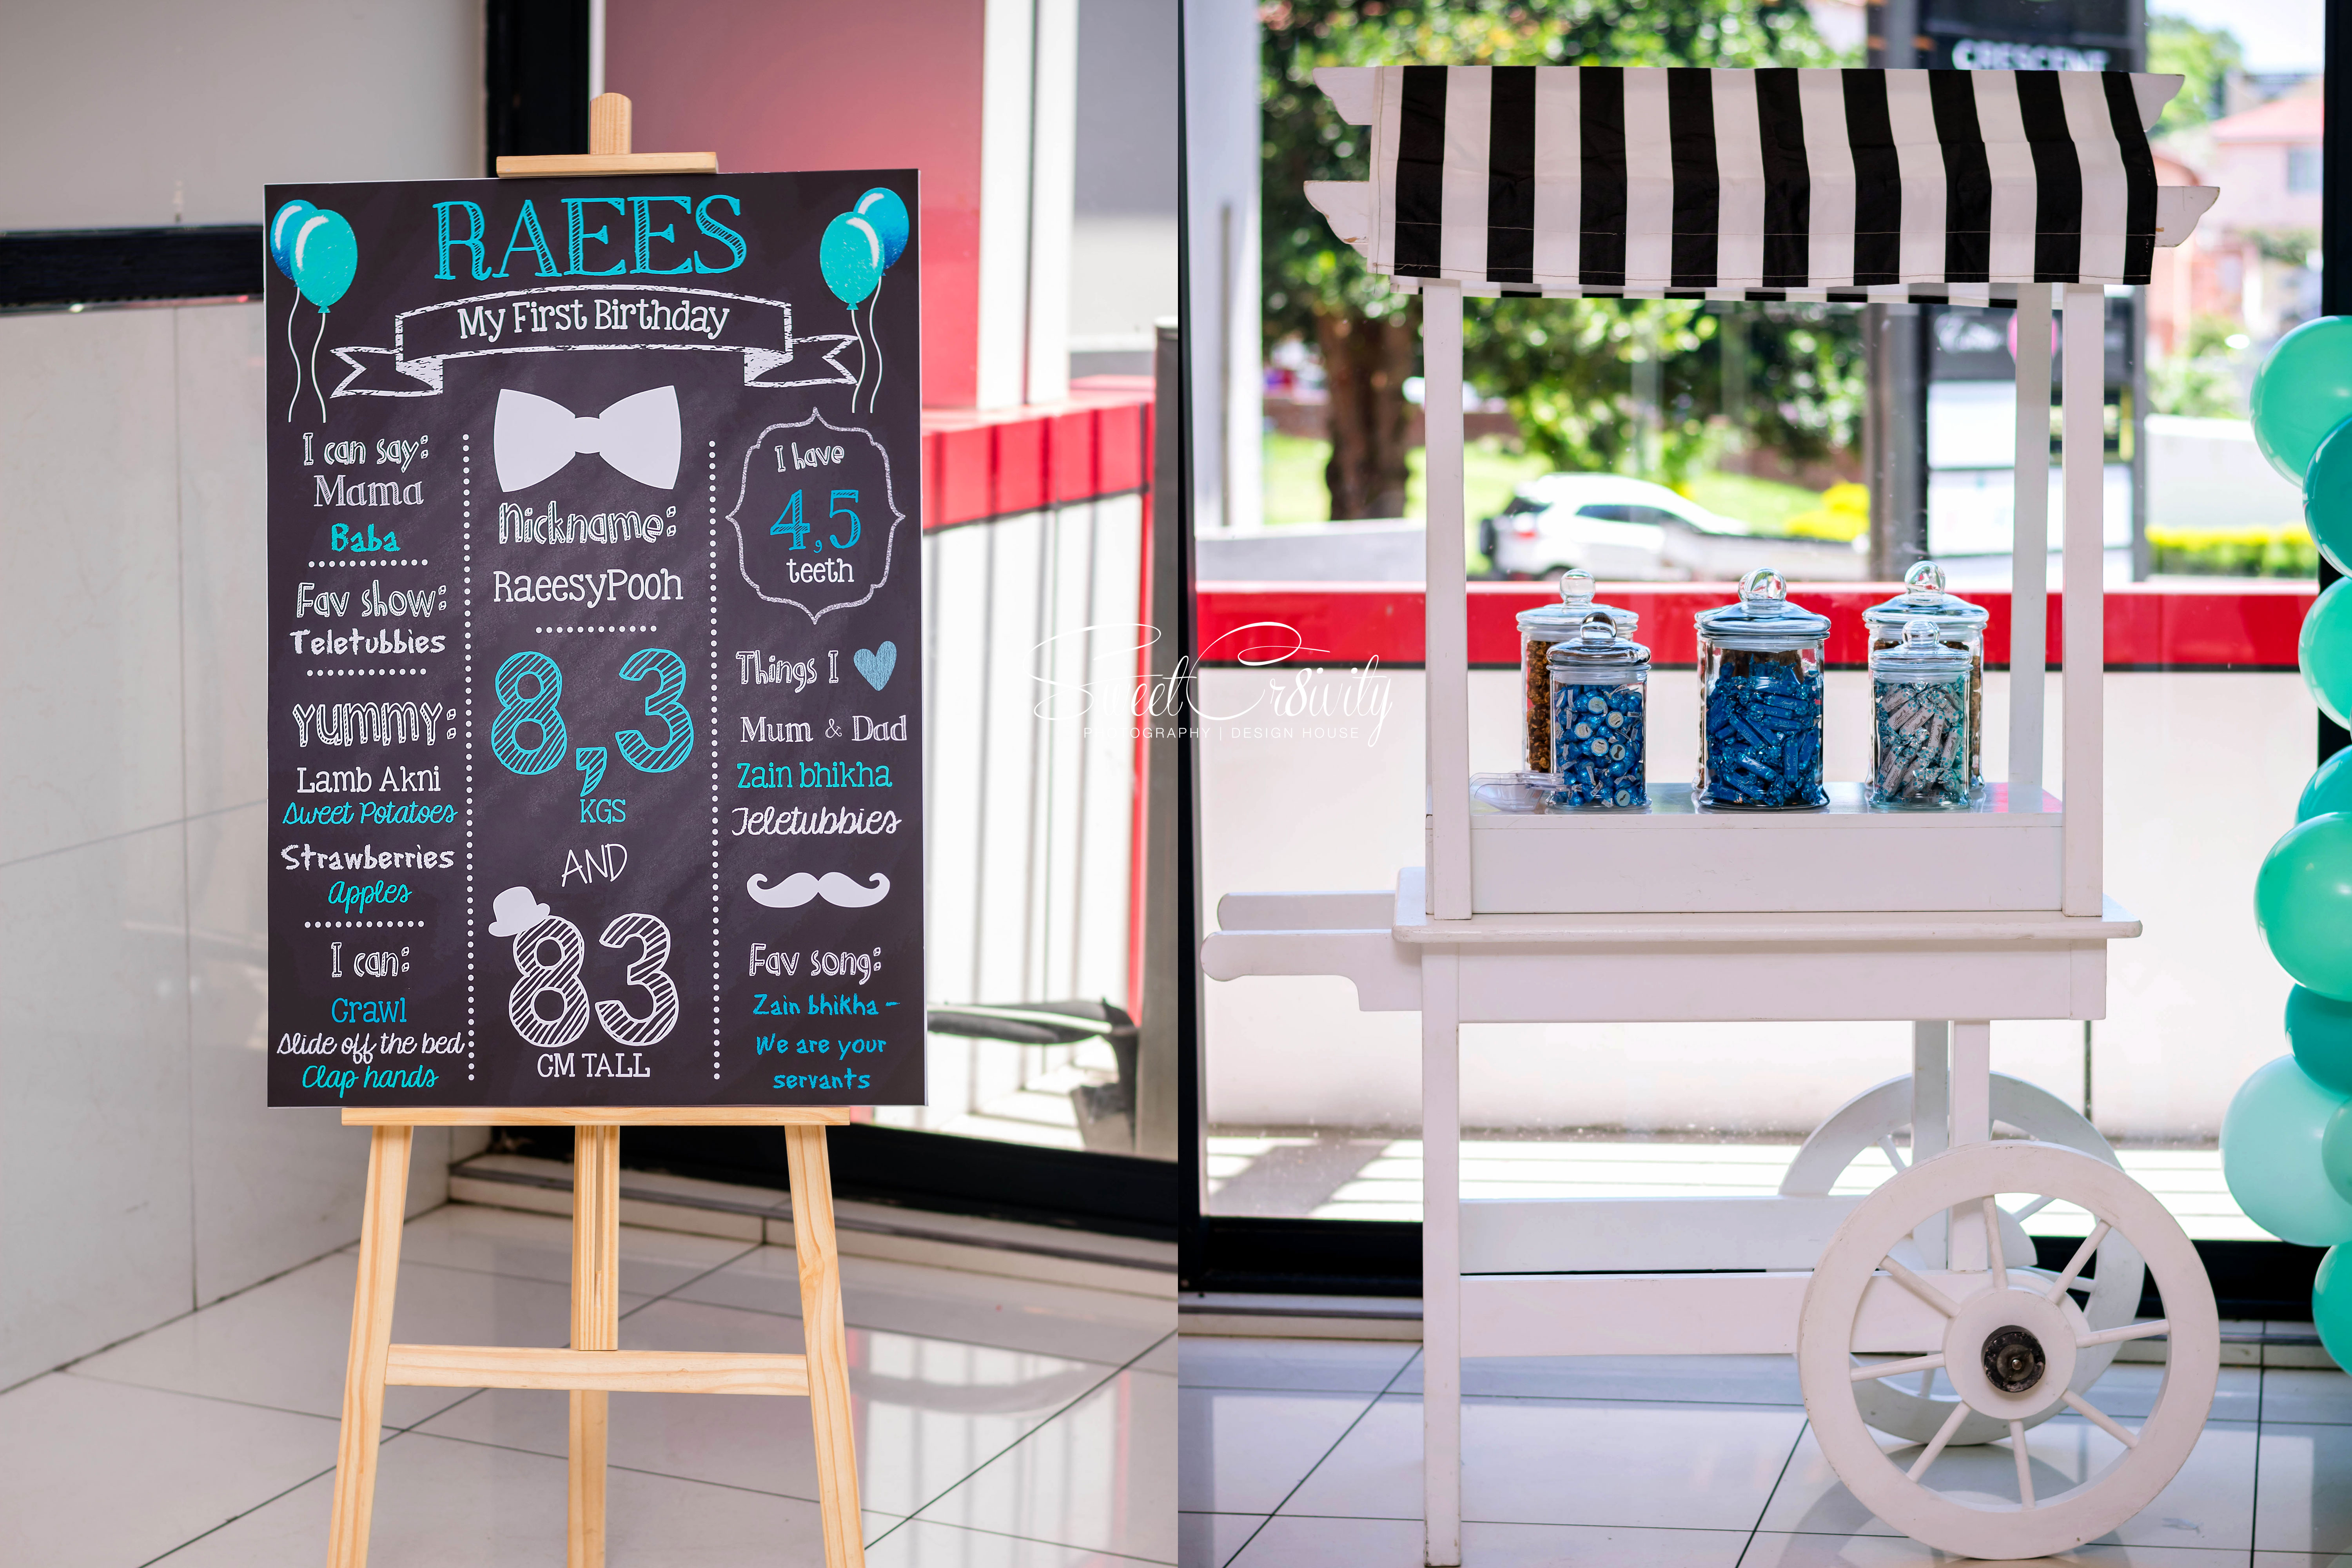 raees turns 1, sweetcr8ivity,the polkadot company, aveen and elaine lutchman, little man, themed birthday party, umhlanga, overport,best durban photographers, Nikon, the exotic conference venue, mumtaz cocoa, gift bags,, themed cookies, fancy, creative, mo magic, donuts